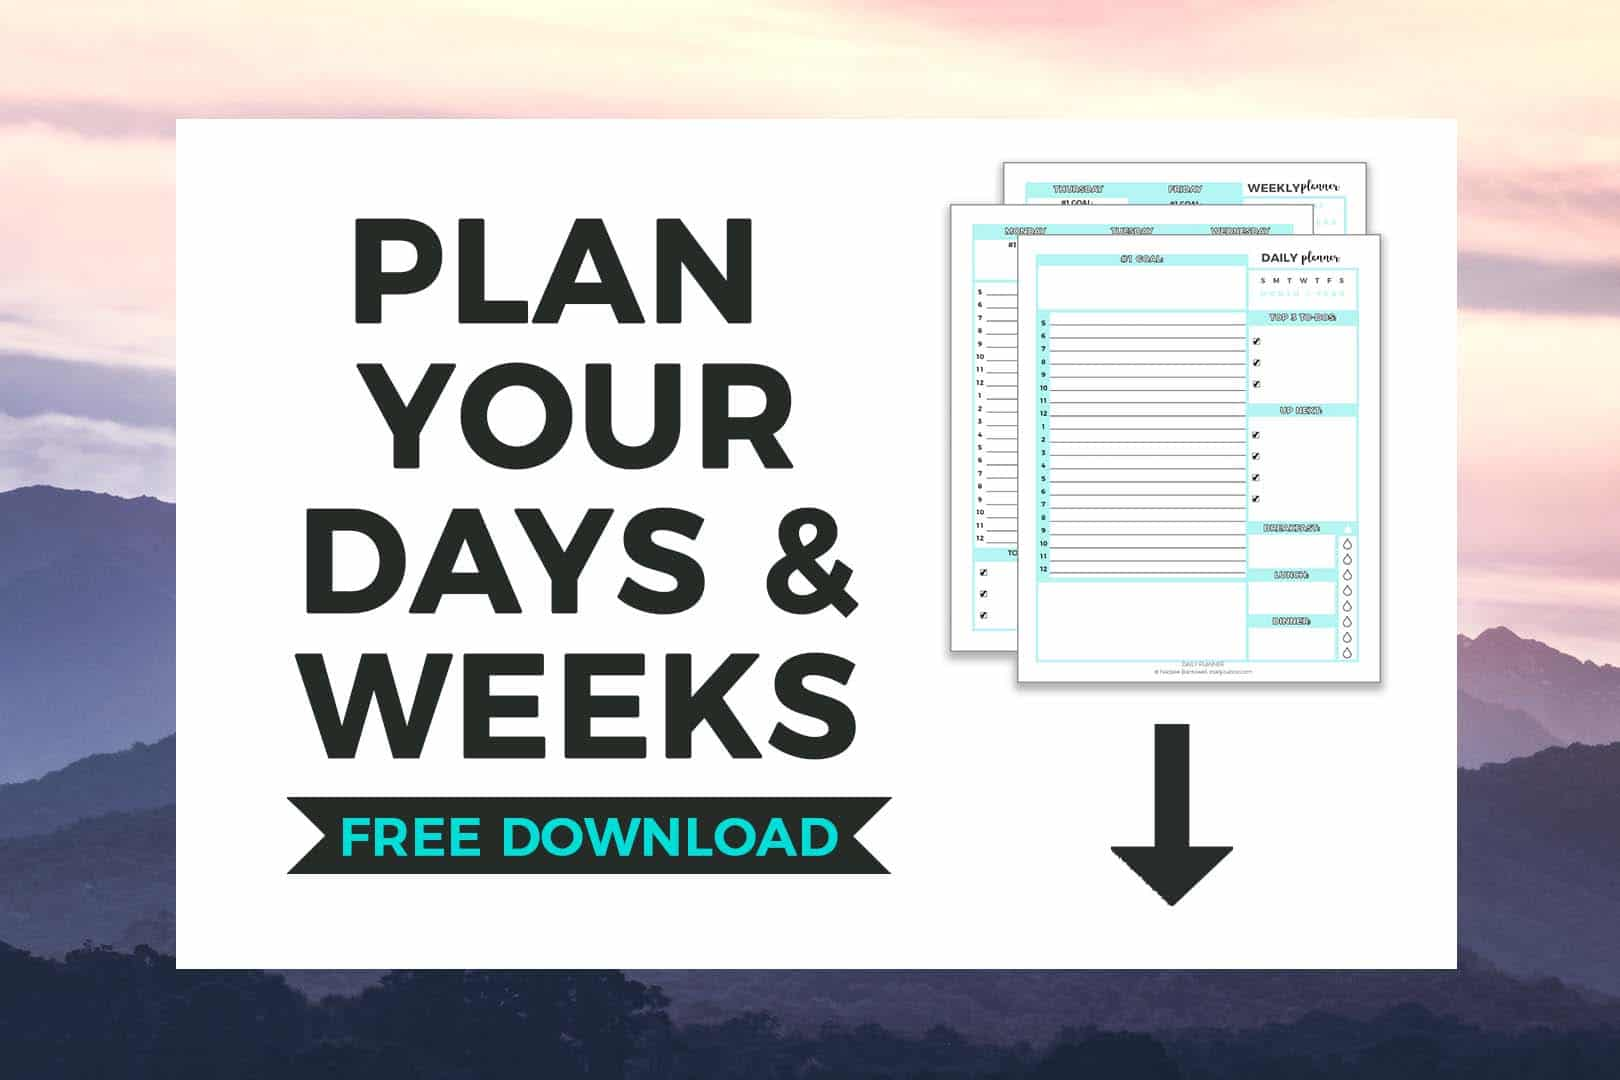 Plan Your Days & Weeks FREE Printable